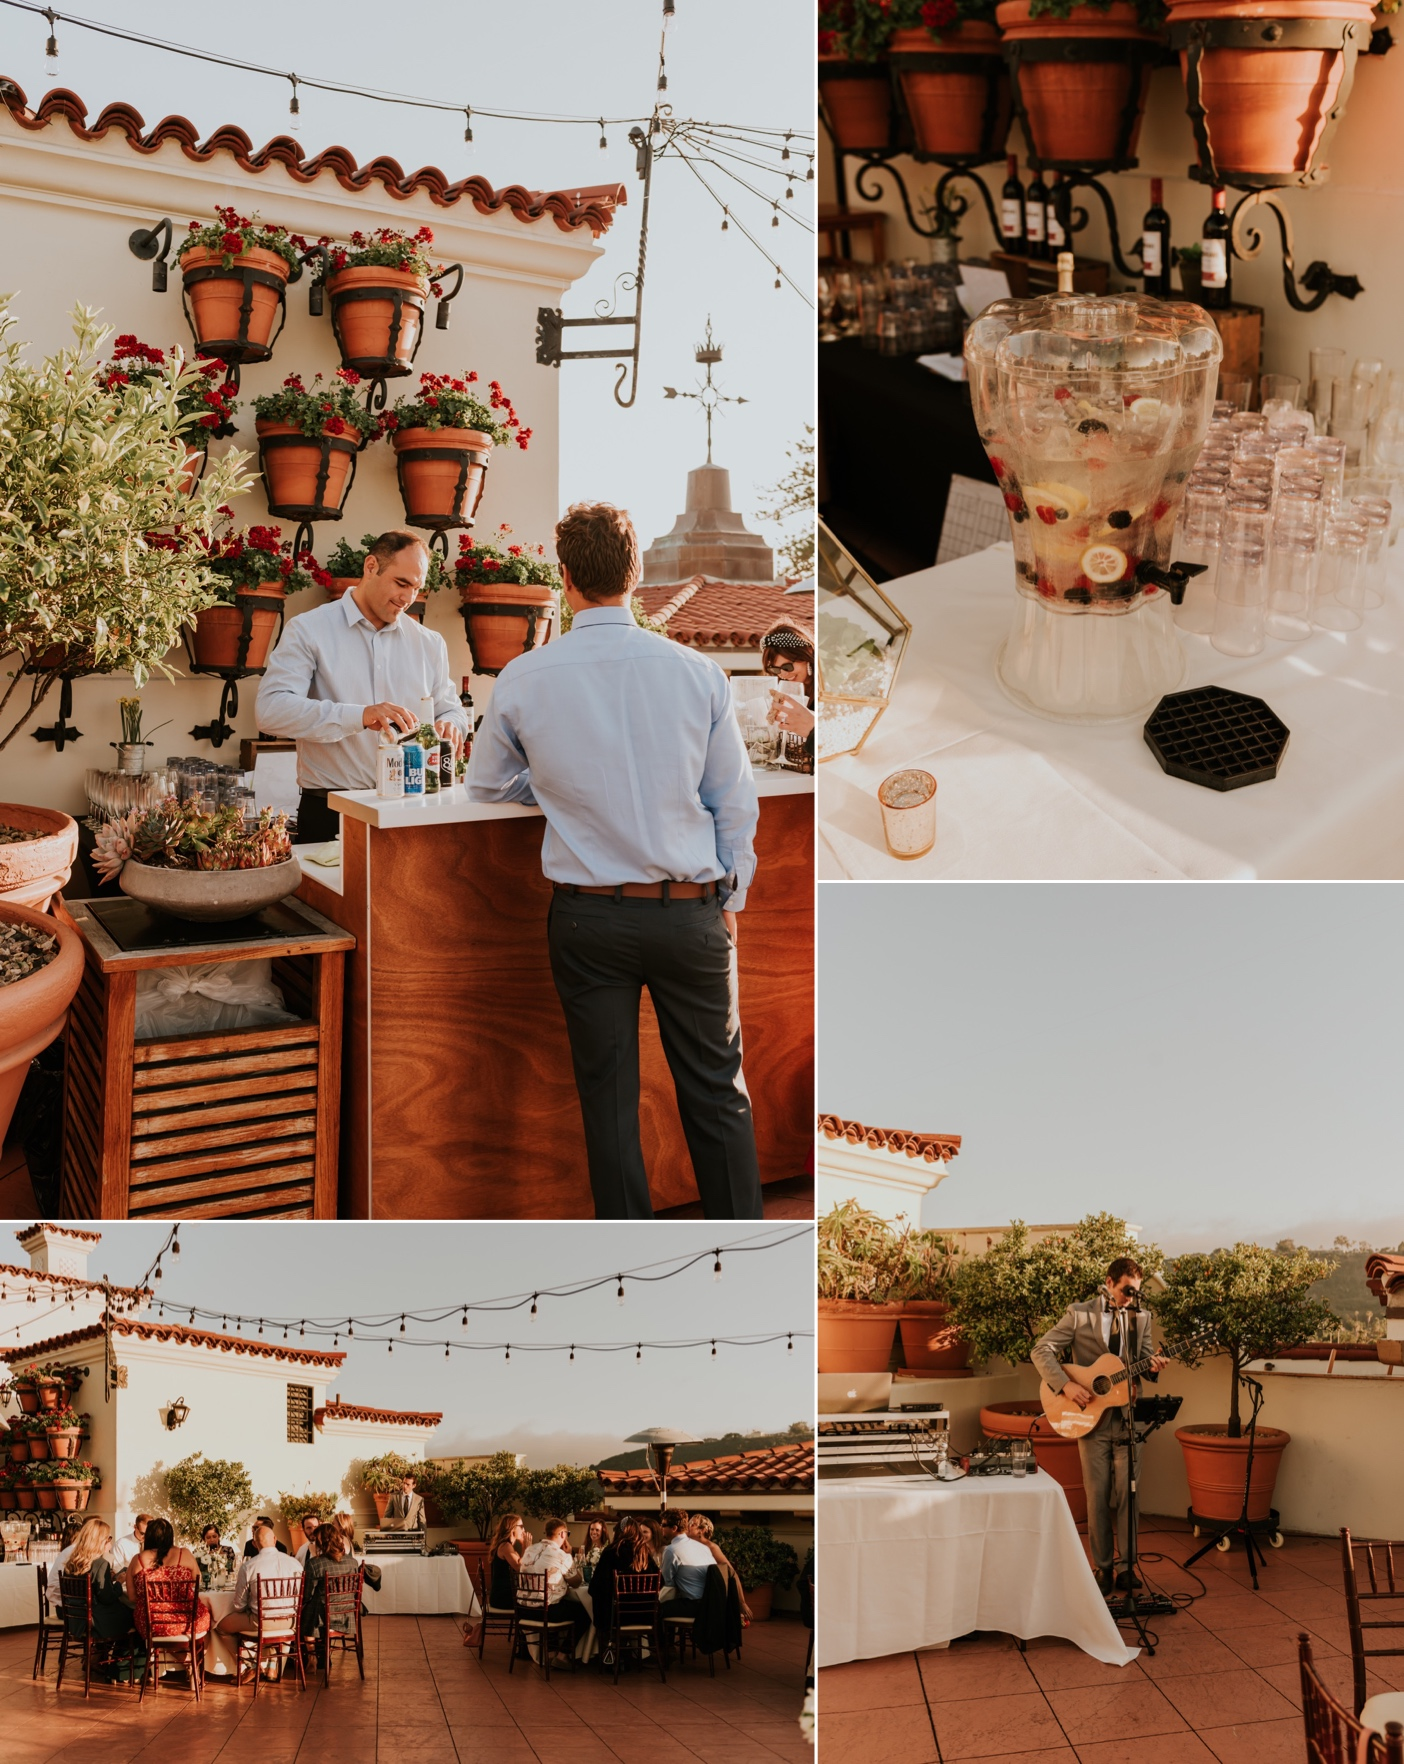 Sunset Rooftop wedding reception Canary Hotel Santa Barbara.